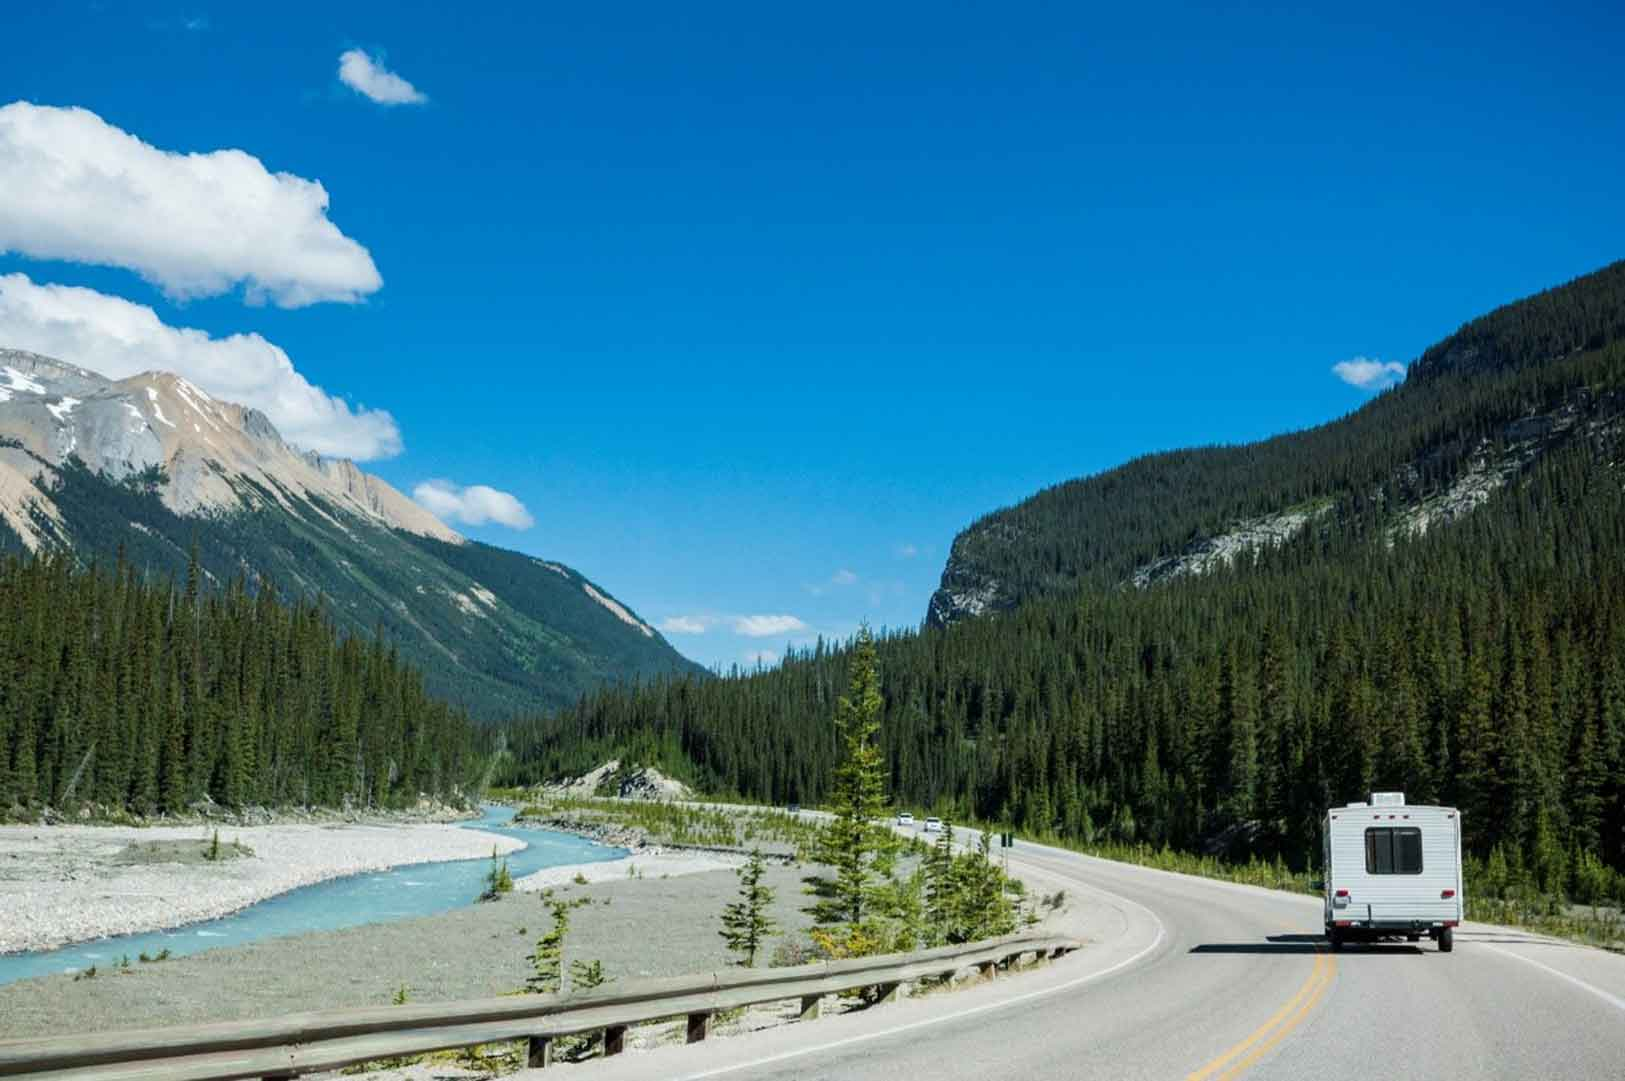 Buying A 4 Season RV? Learn These Important Features